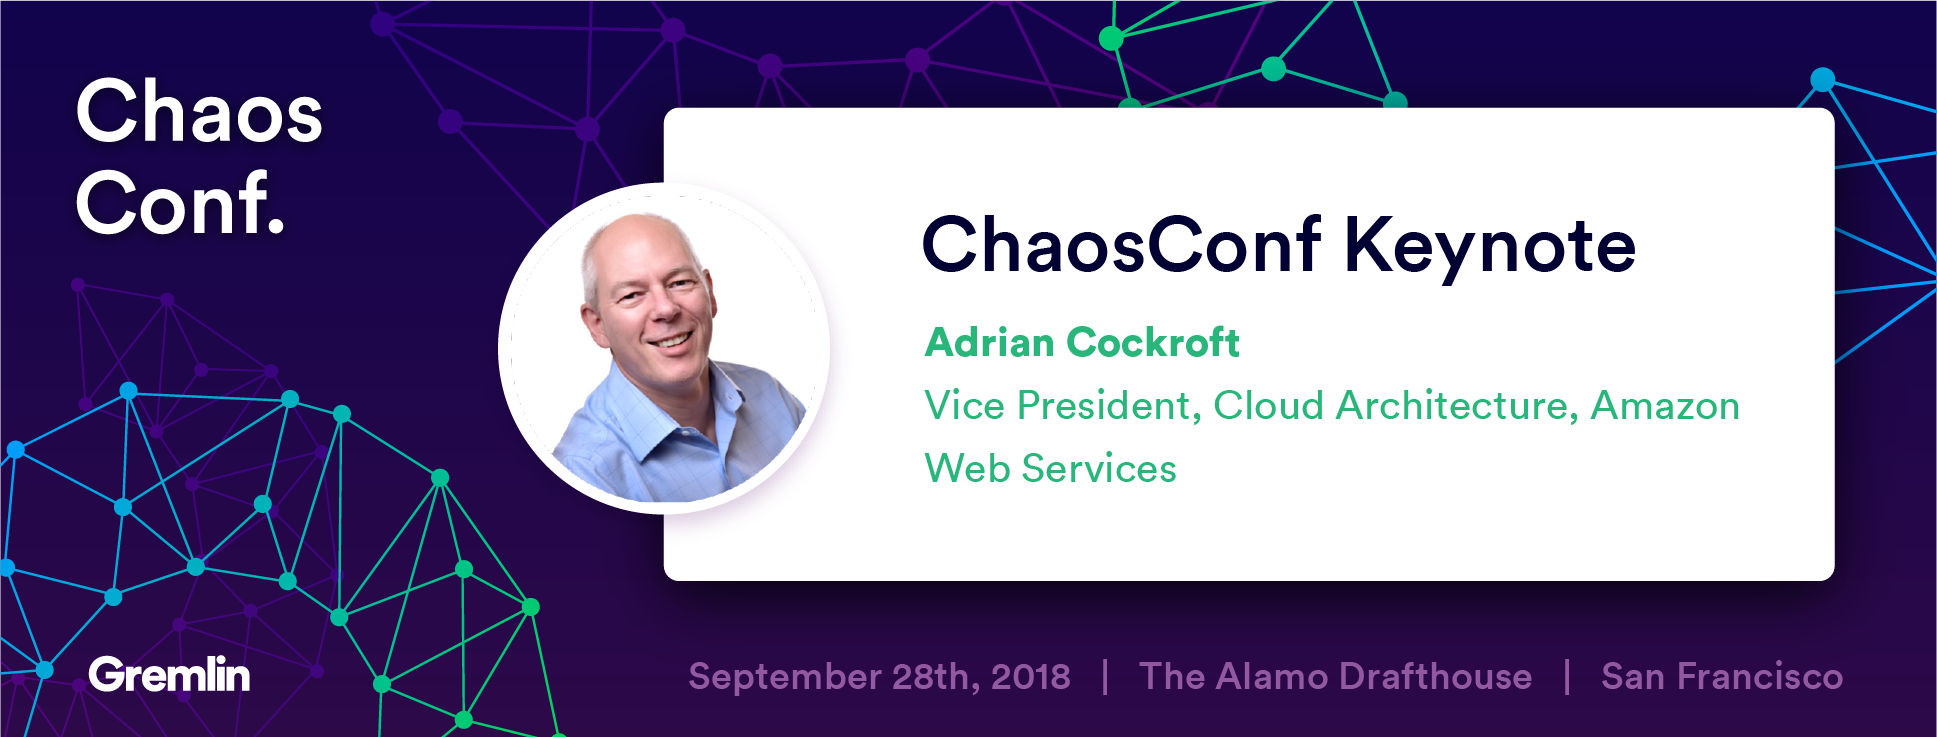 "Adrian Cockroft: ""Chaos Engineering - What it is, and where it's going"" - Chaos Conf 2018"